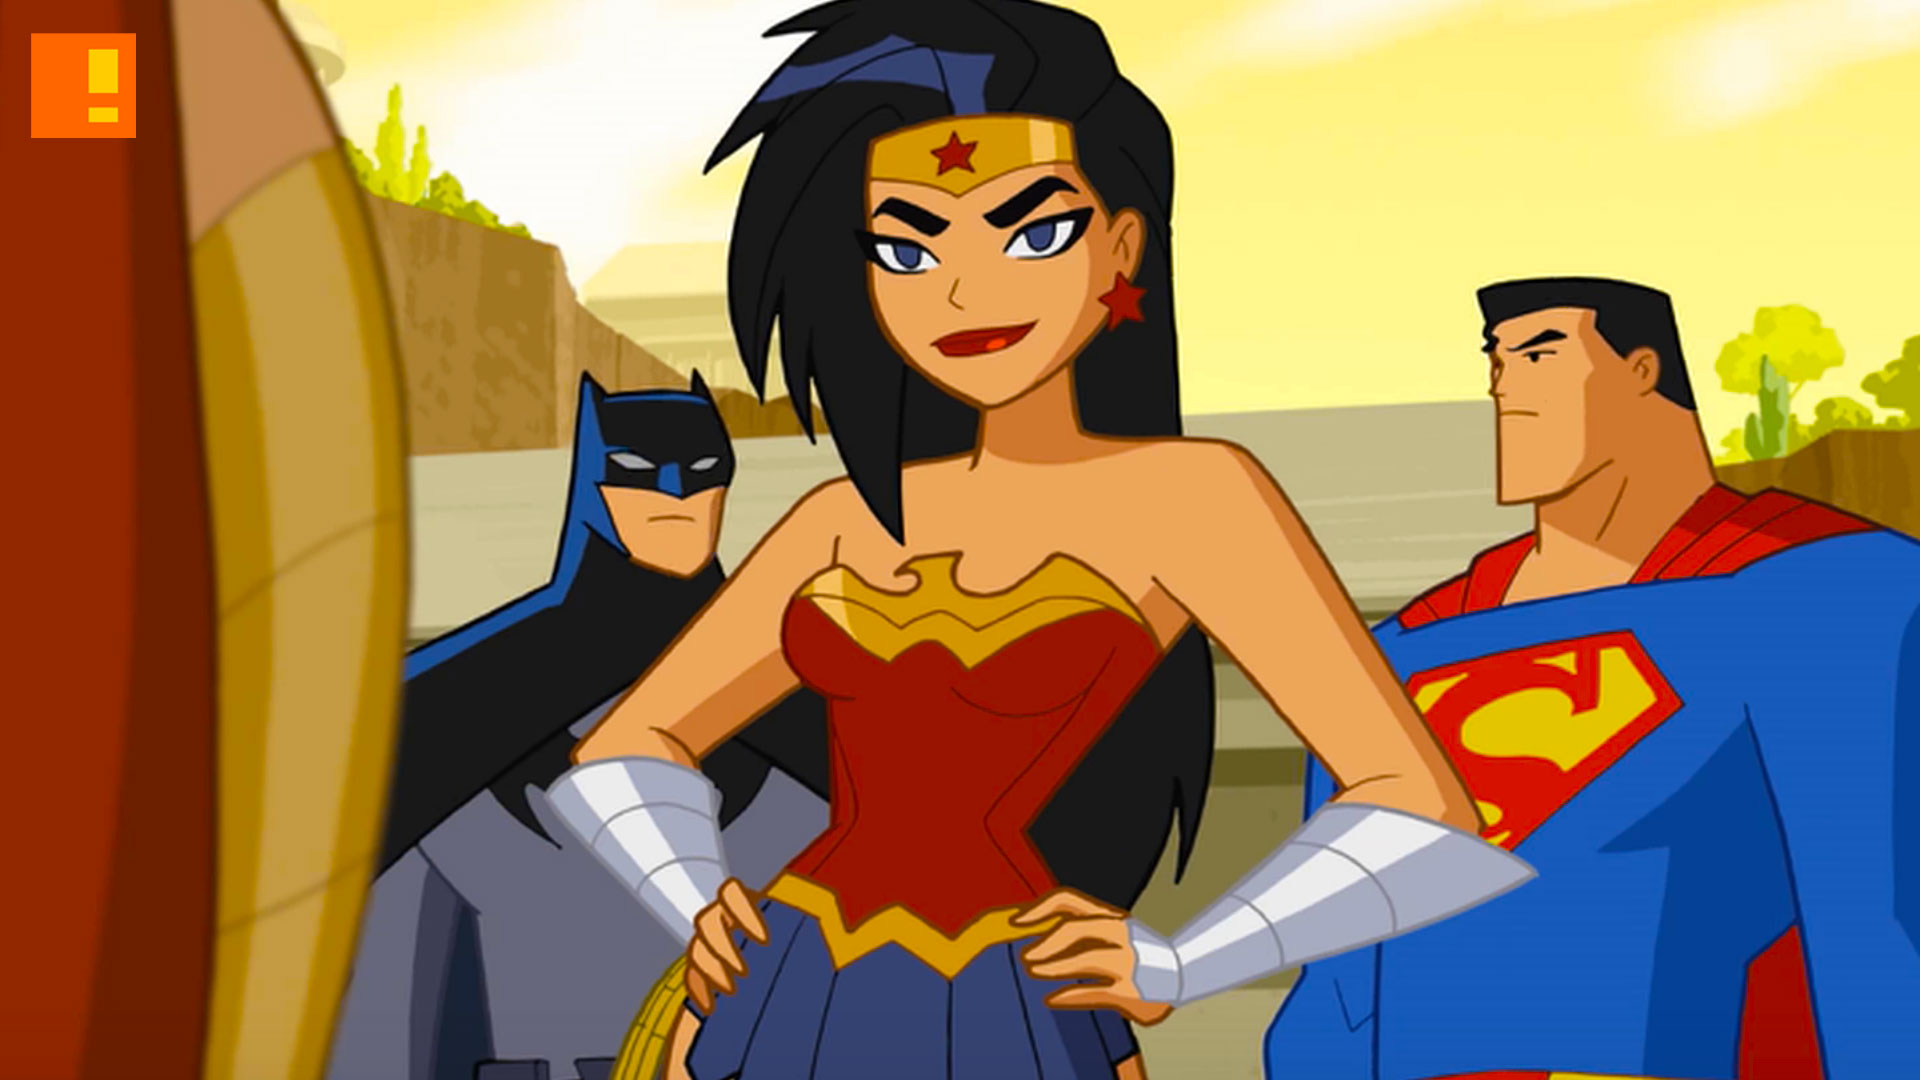 justice league action, justice league, warner bros. , warner bros. tv, dc comics, wb animation, dc entertainment , cartoon network, highlight reel, wonder woman, batman, superman, dc trinity, justice league, sdcc, san diego comic con,